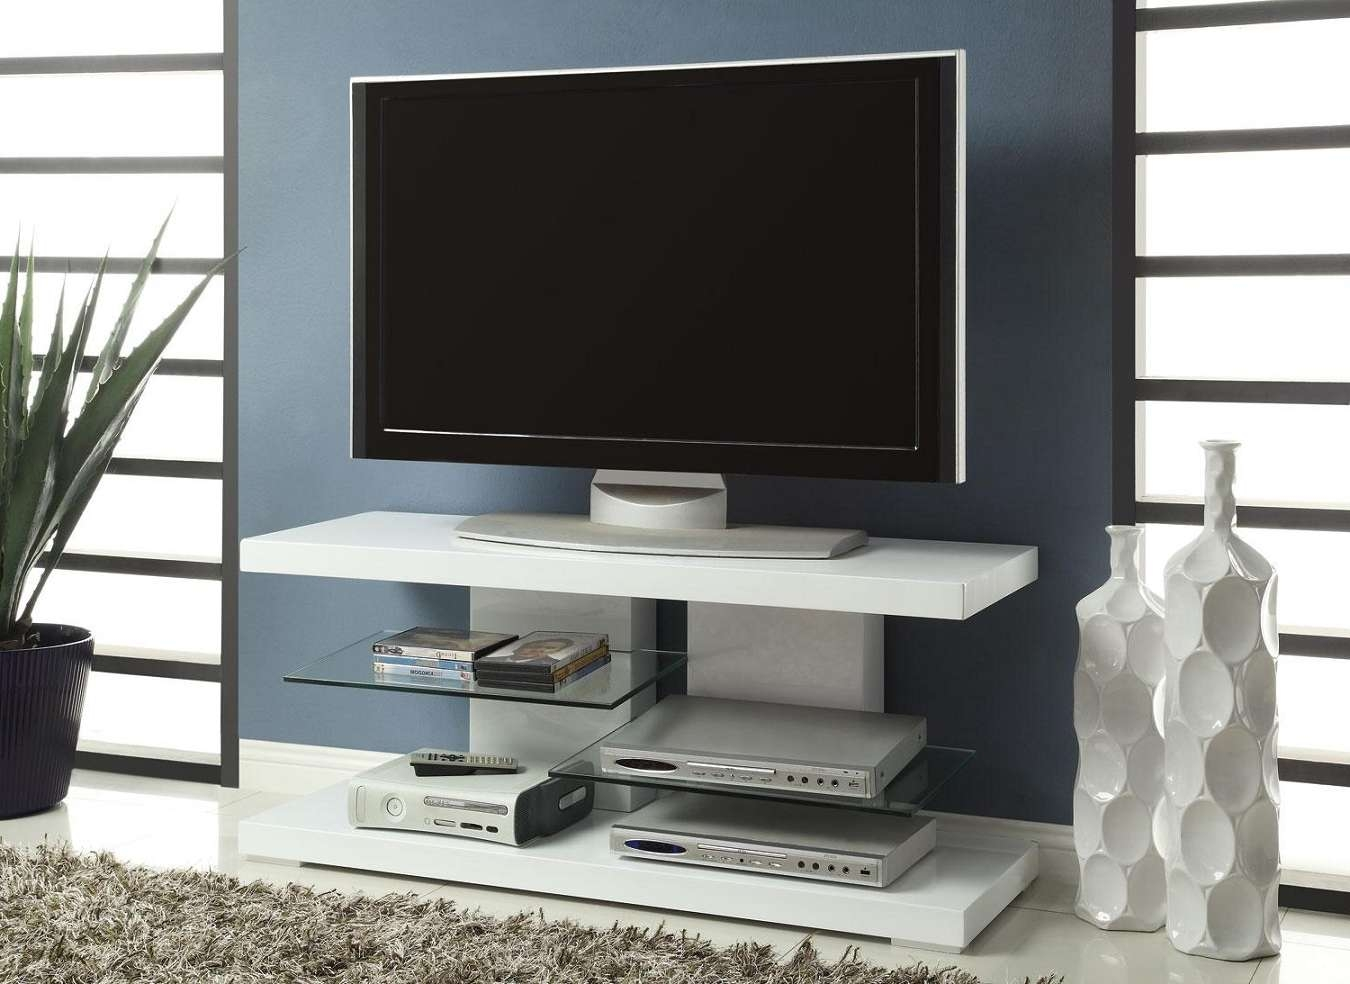 White Painted Plywood Flat Screen Tv Stand With Tempered Glass In Stylish Tv Stands (View 14 of 15)